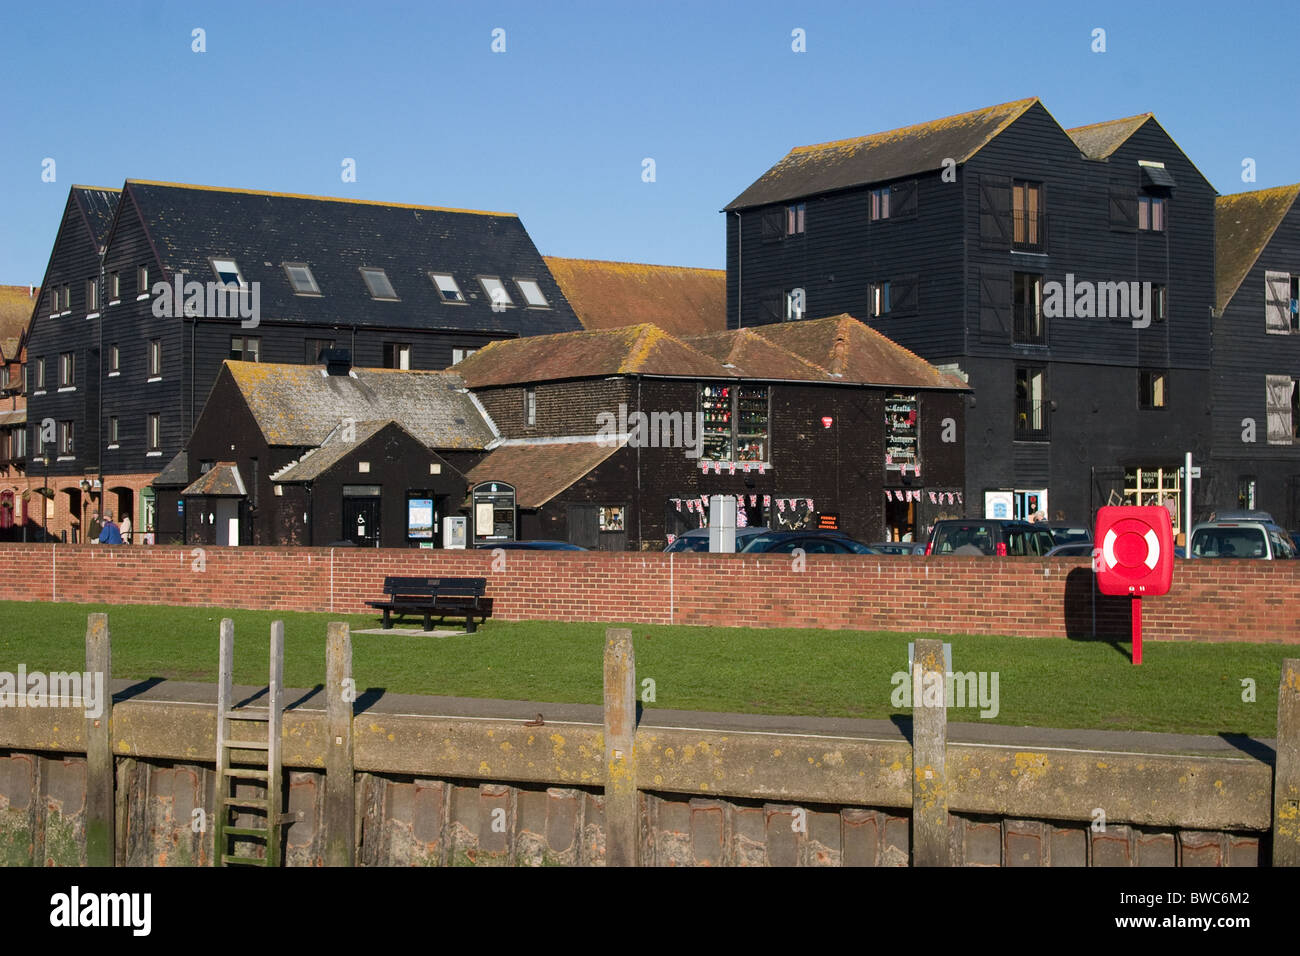 public access riverside lawn and seating Georgian warehouses - Stock Image